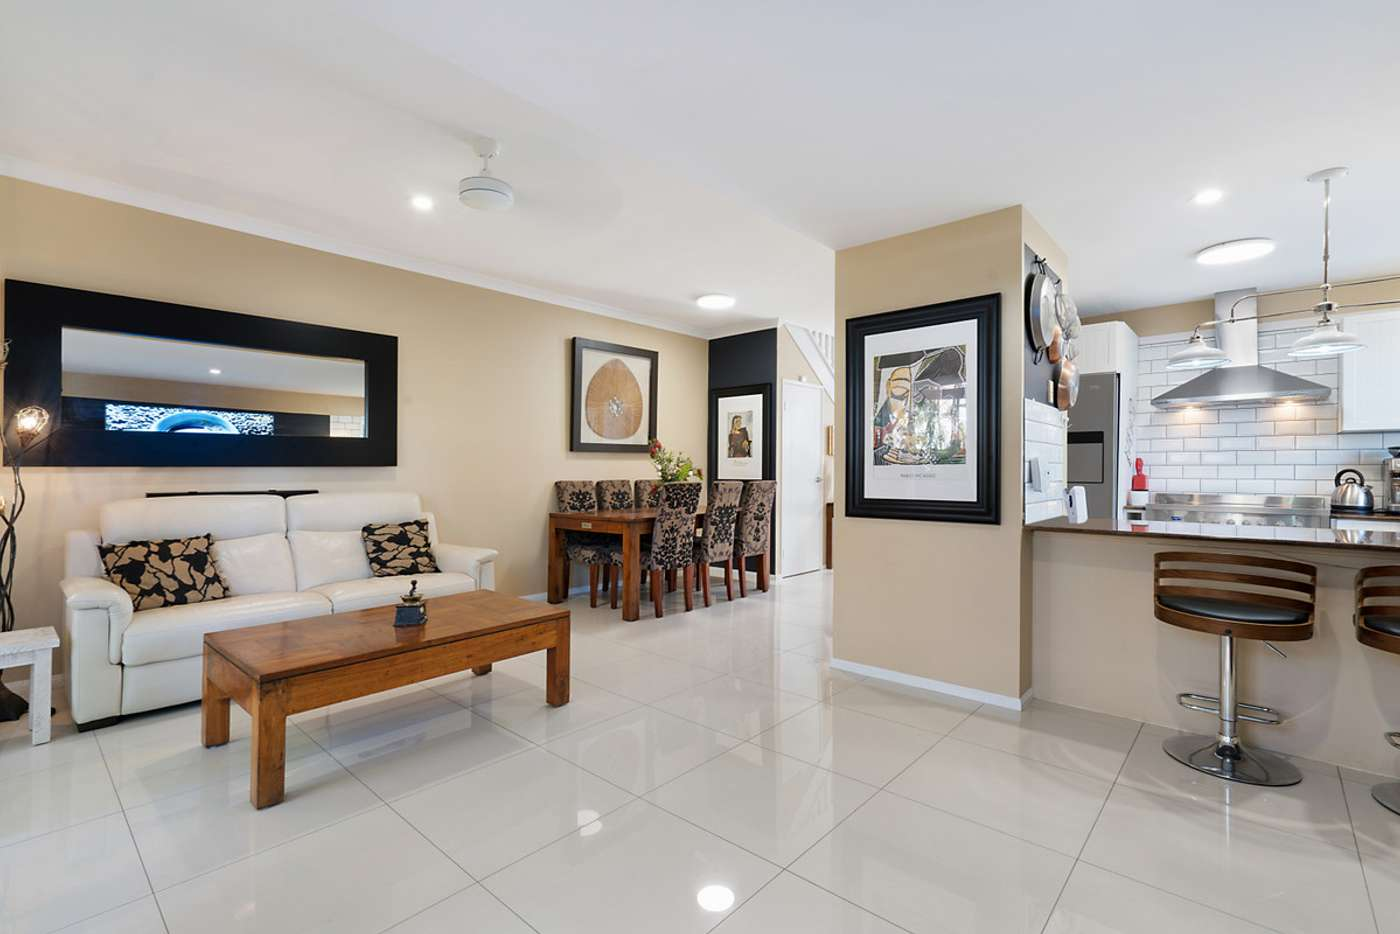 Main view of Homely townhouse listing, 23/60-76 Caseys Road, Hope Island QLD 4212